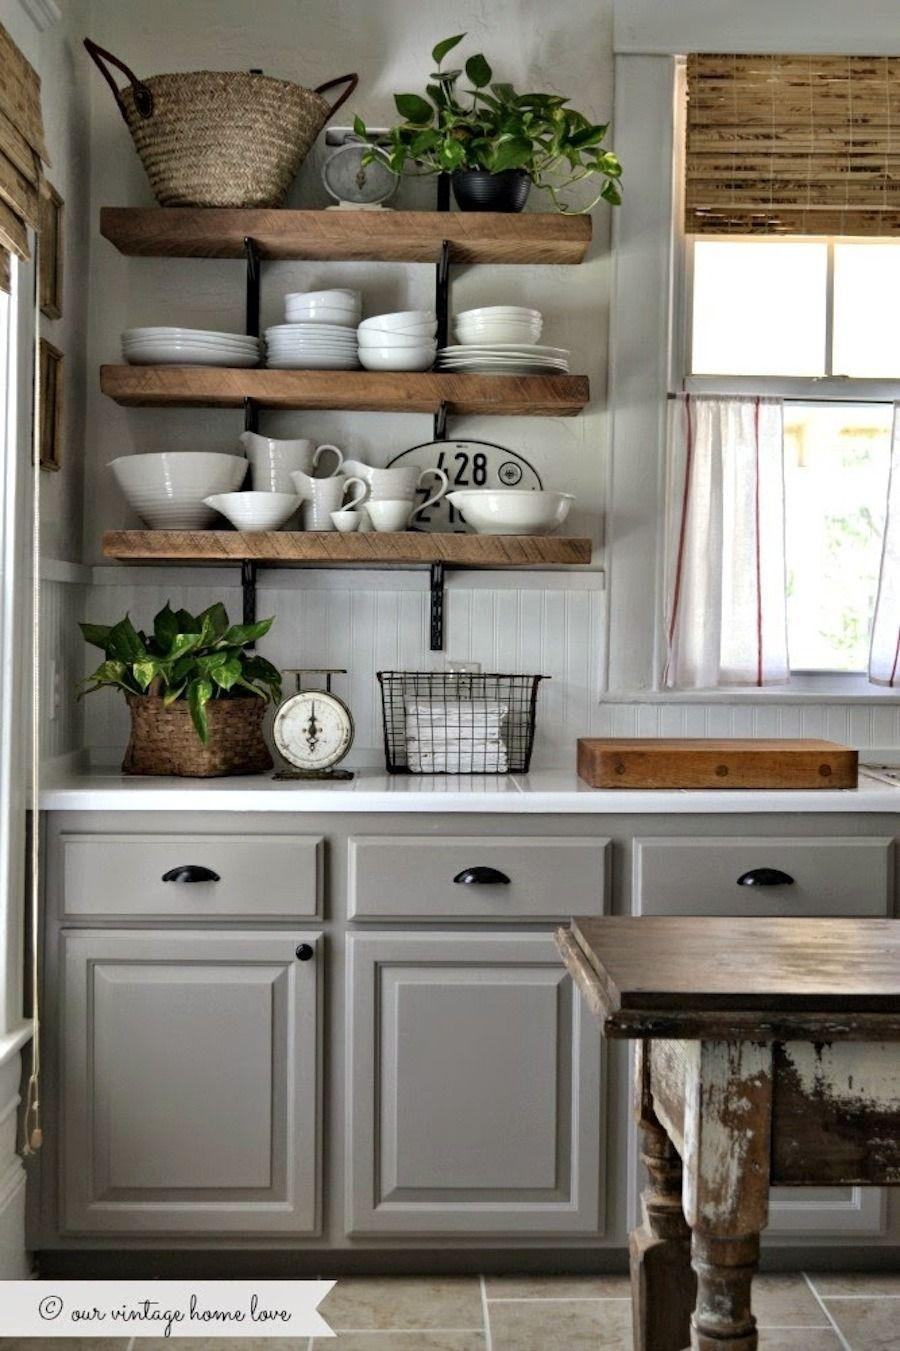 Rustic Country Kitchen Decorations Distinguish a Unified Design